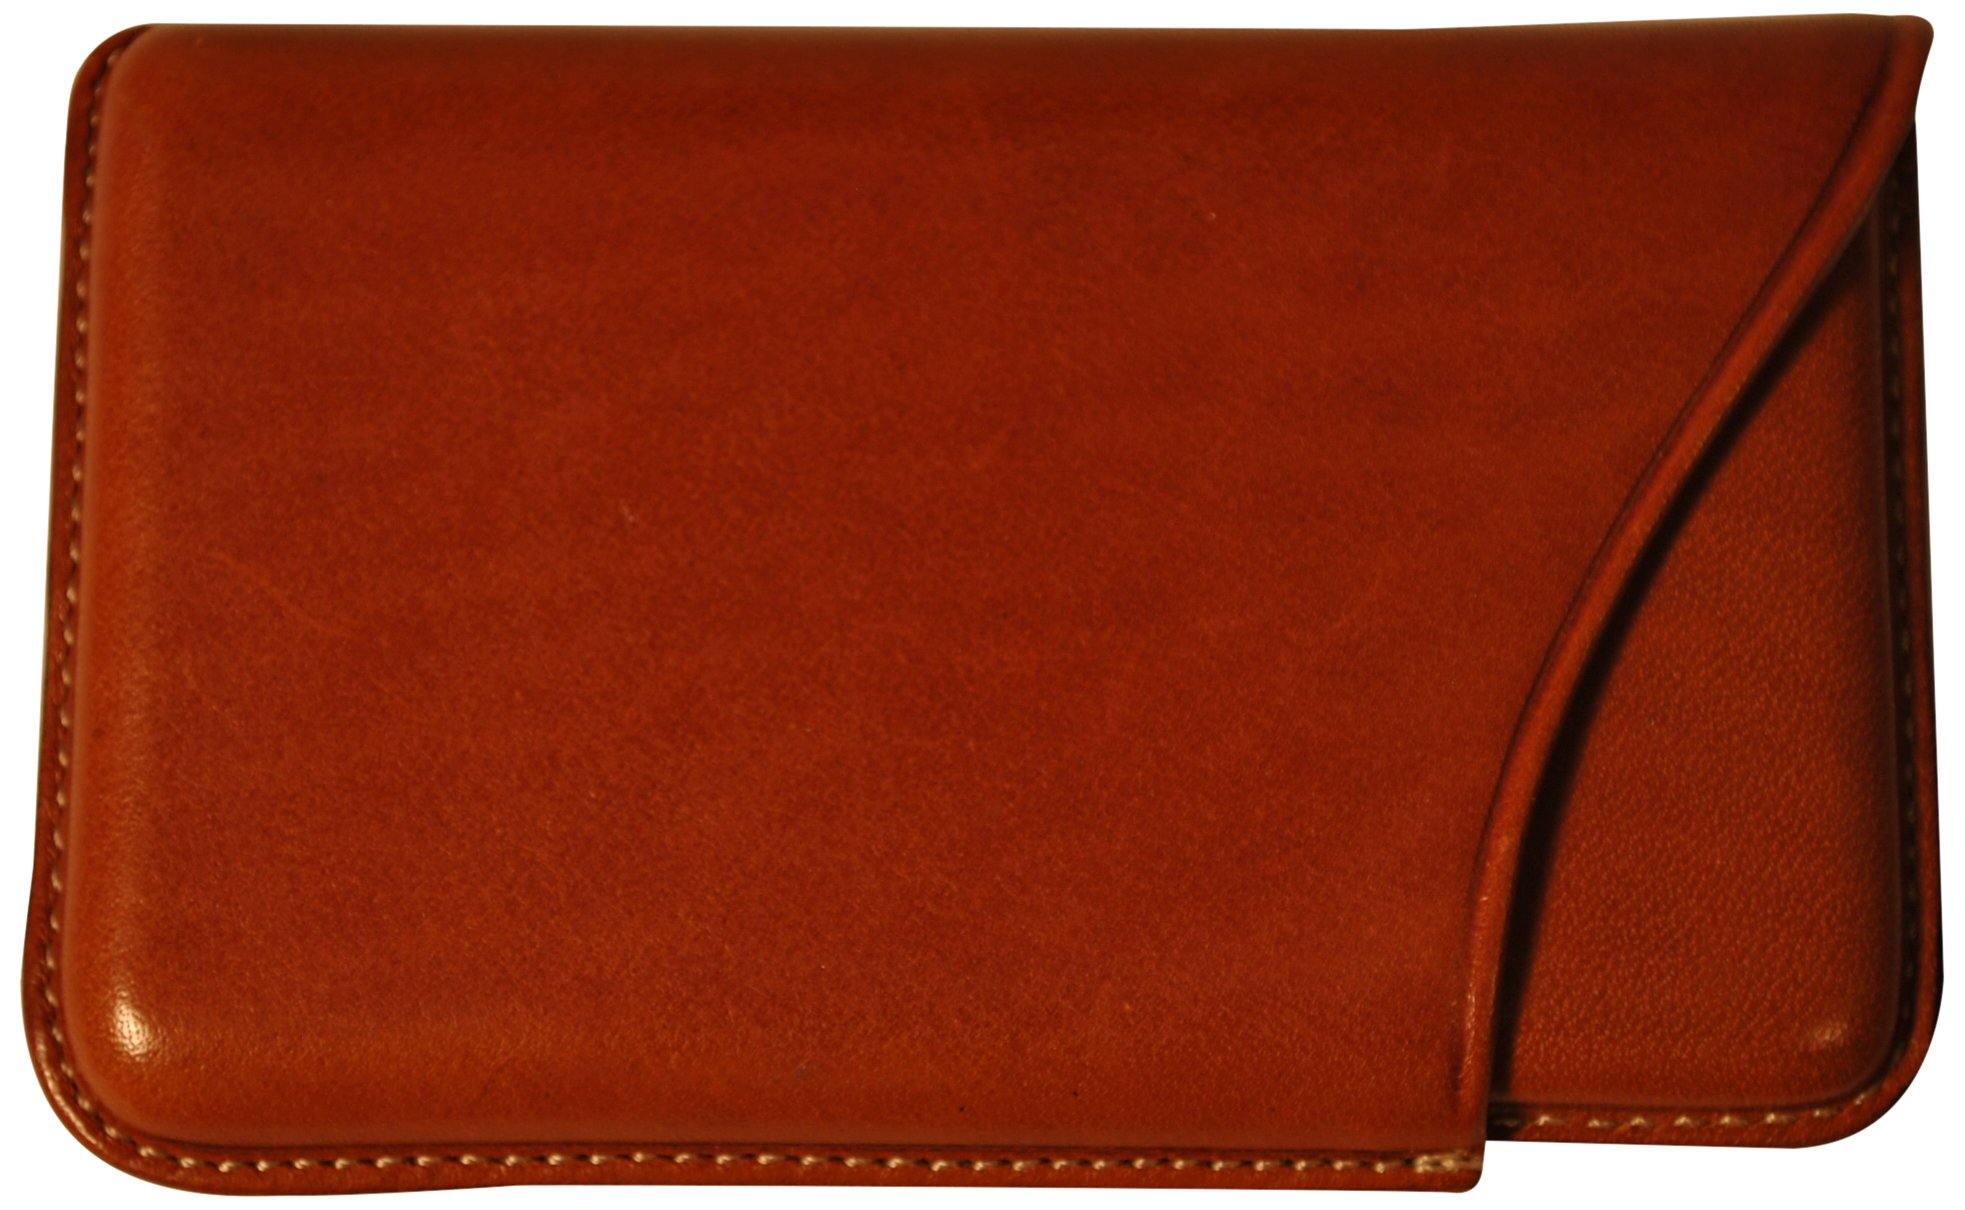 Budd Leather Company Slide Out Business Card Case, Tan (603100-3) by Budd Leather (Image #2)